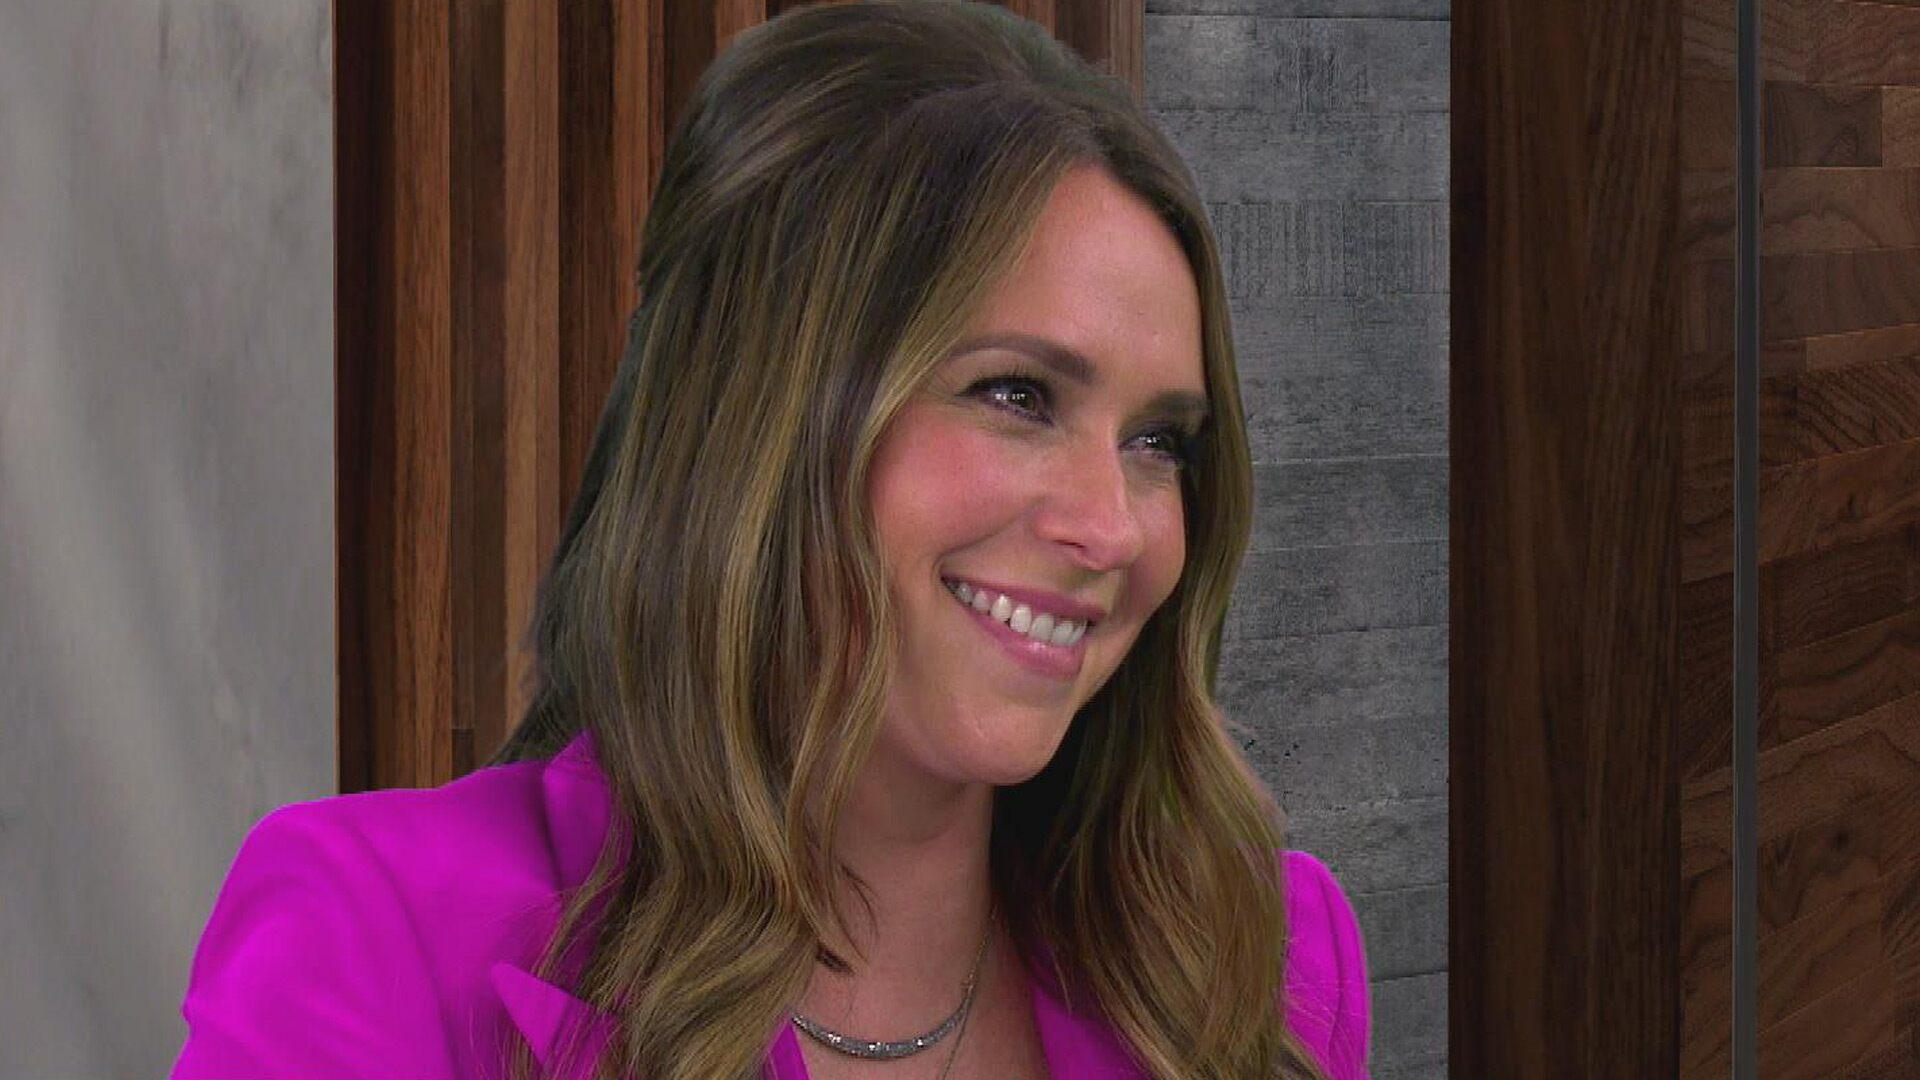 Jennifer Love Hewitt Says She's 'Ready' to Join 'Dancing With the Stars' (Exclusive)